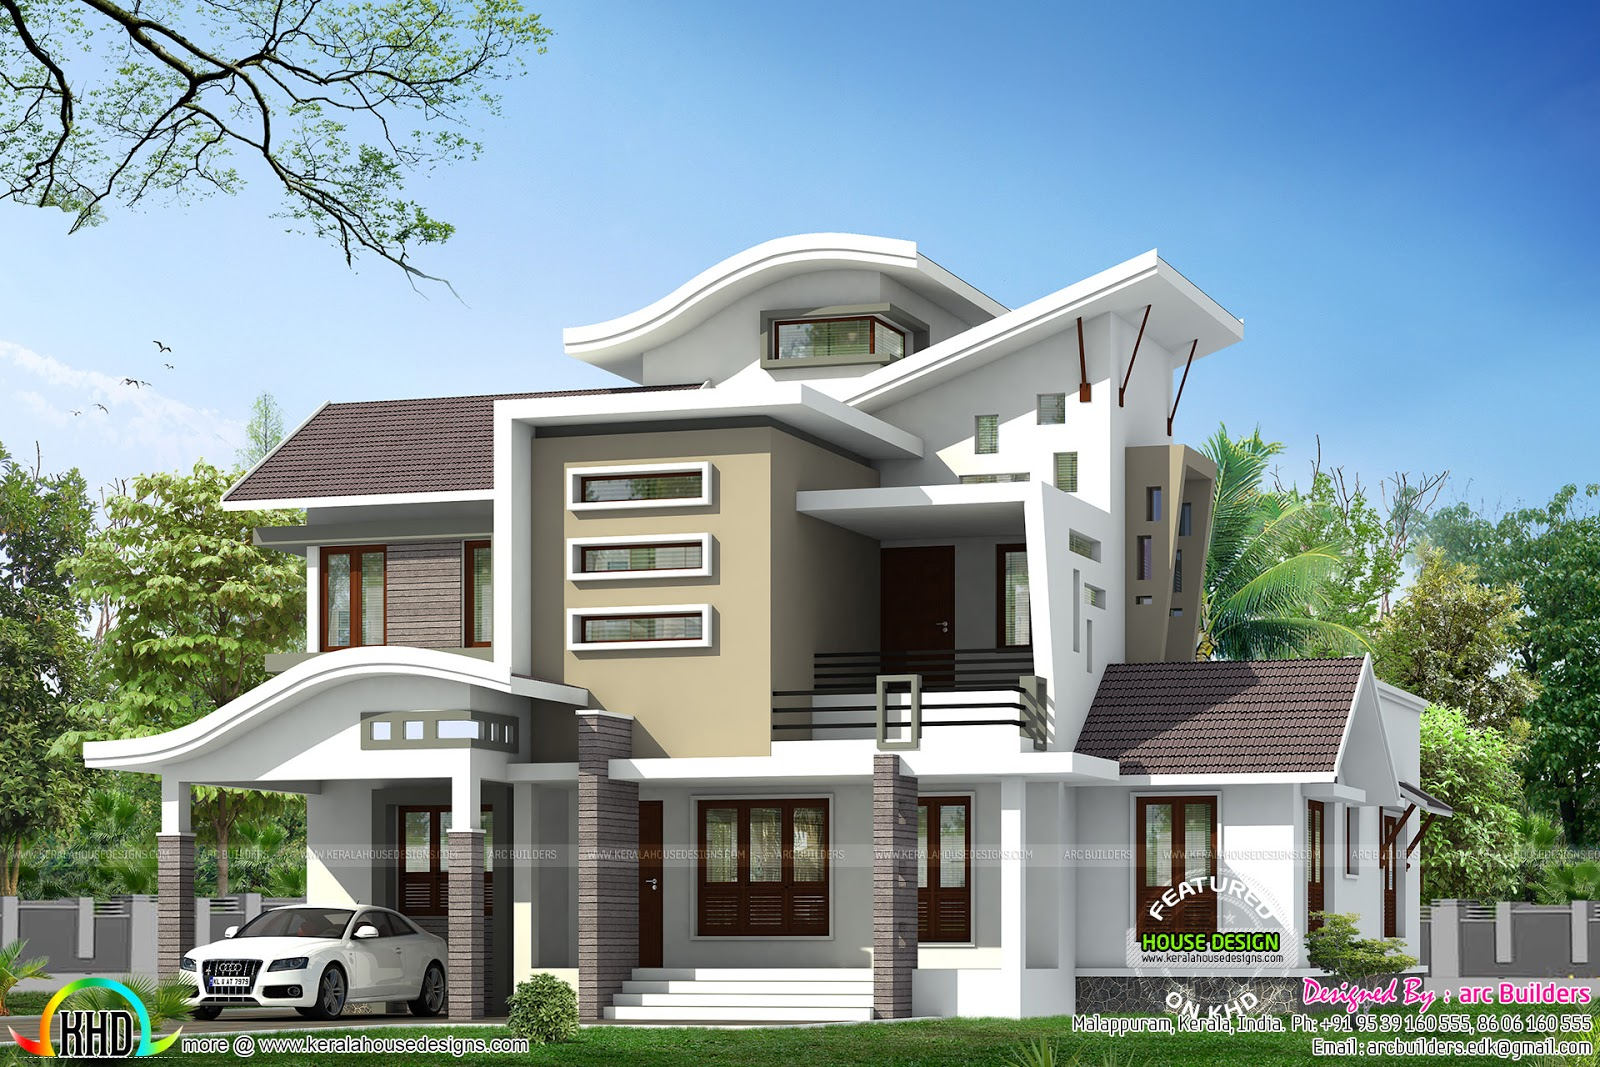 Unique ultra modern contemporary architecture kerala for Cool modern house ideas